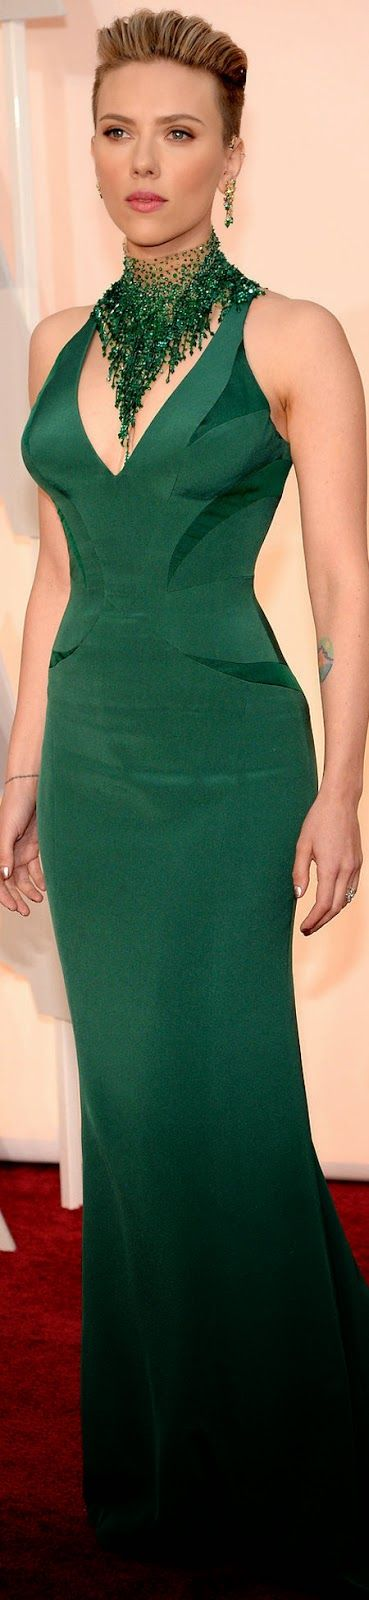 Scarlett Johansson accentuates her curvy figure in this emerald Versace number and matching necklace. 2015 Oscar Red Carpet: